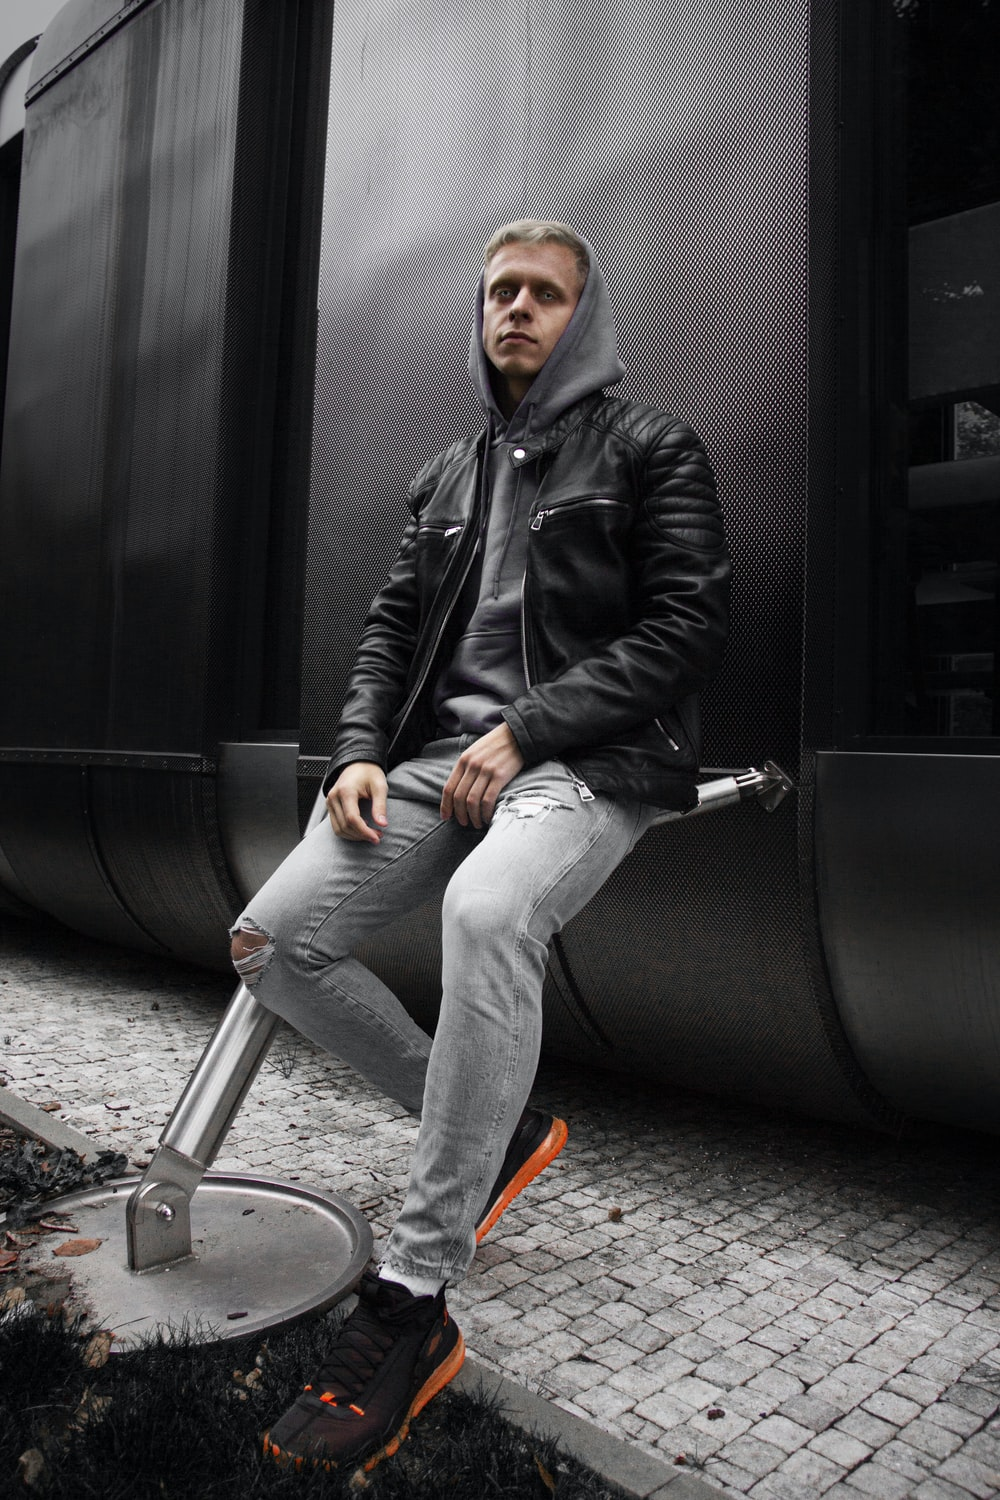 man in black leather jacket and blue denim jeans sitting on gray bicycle